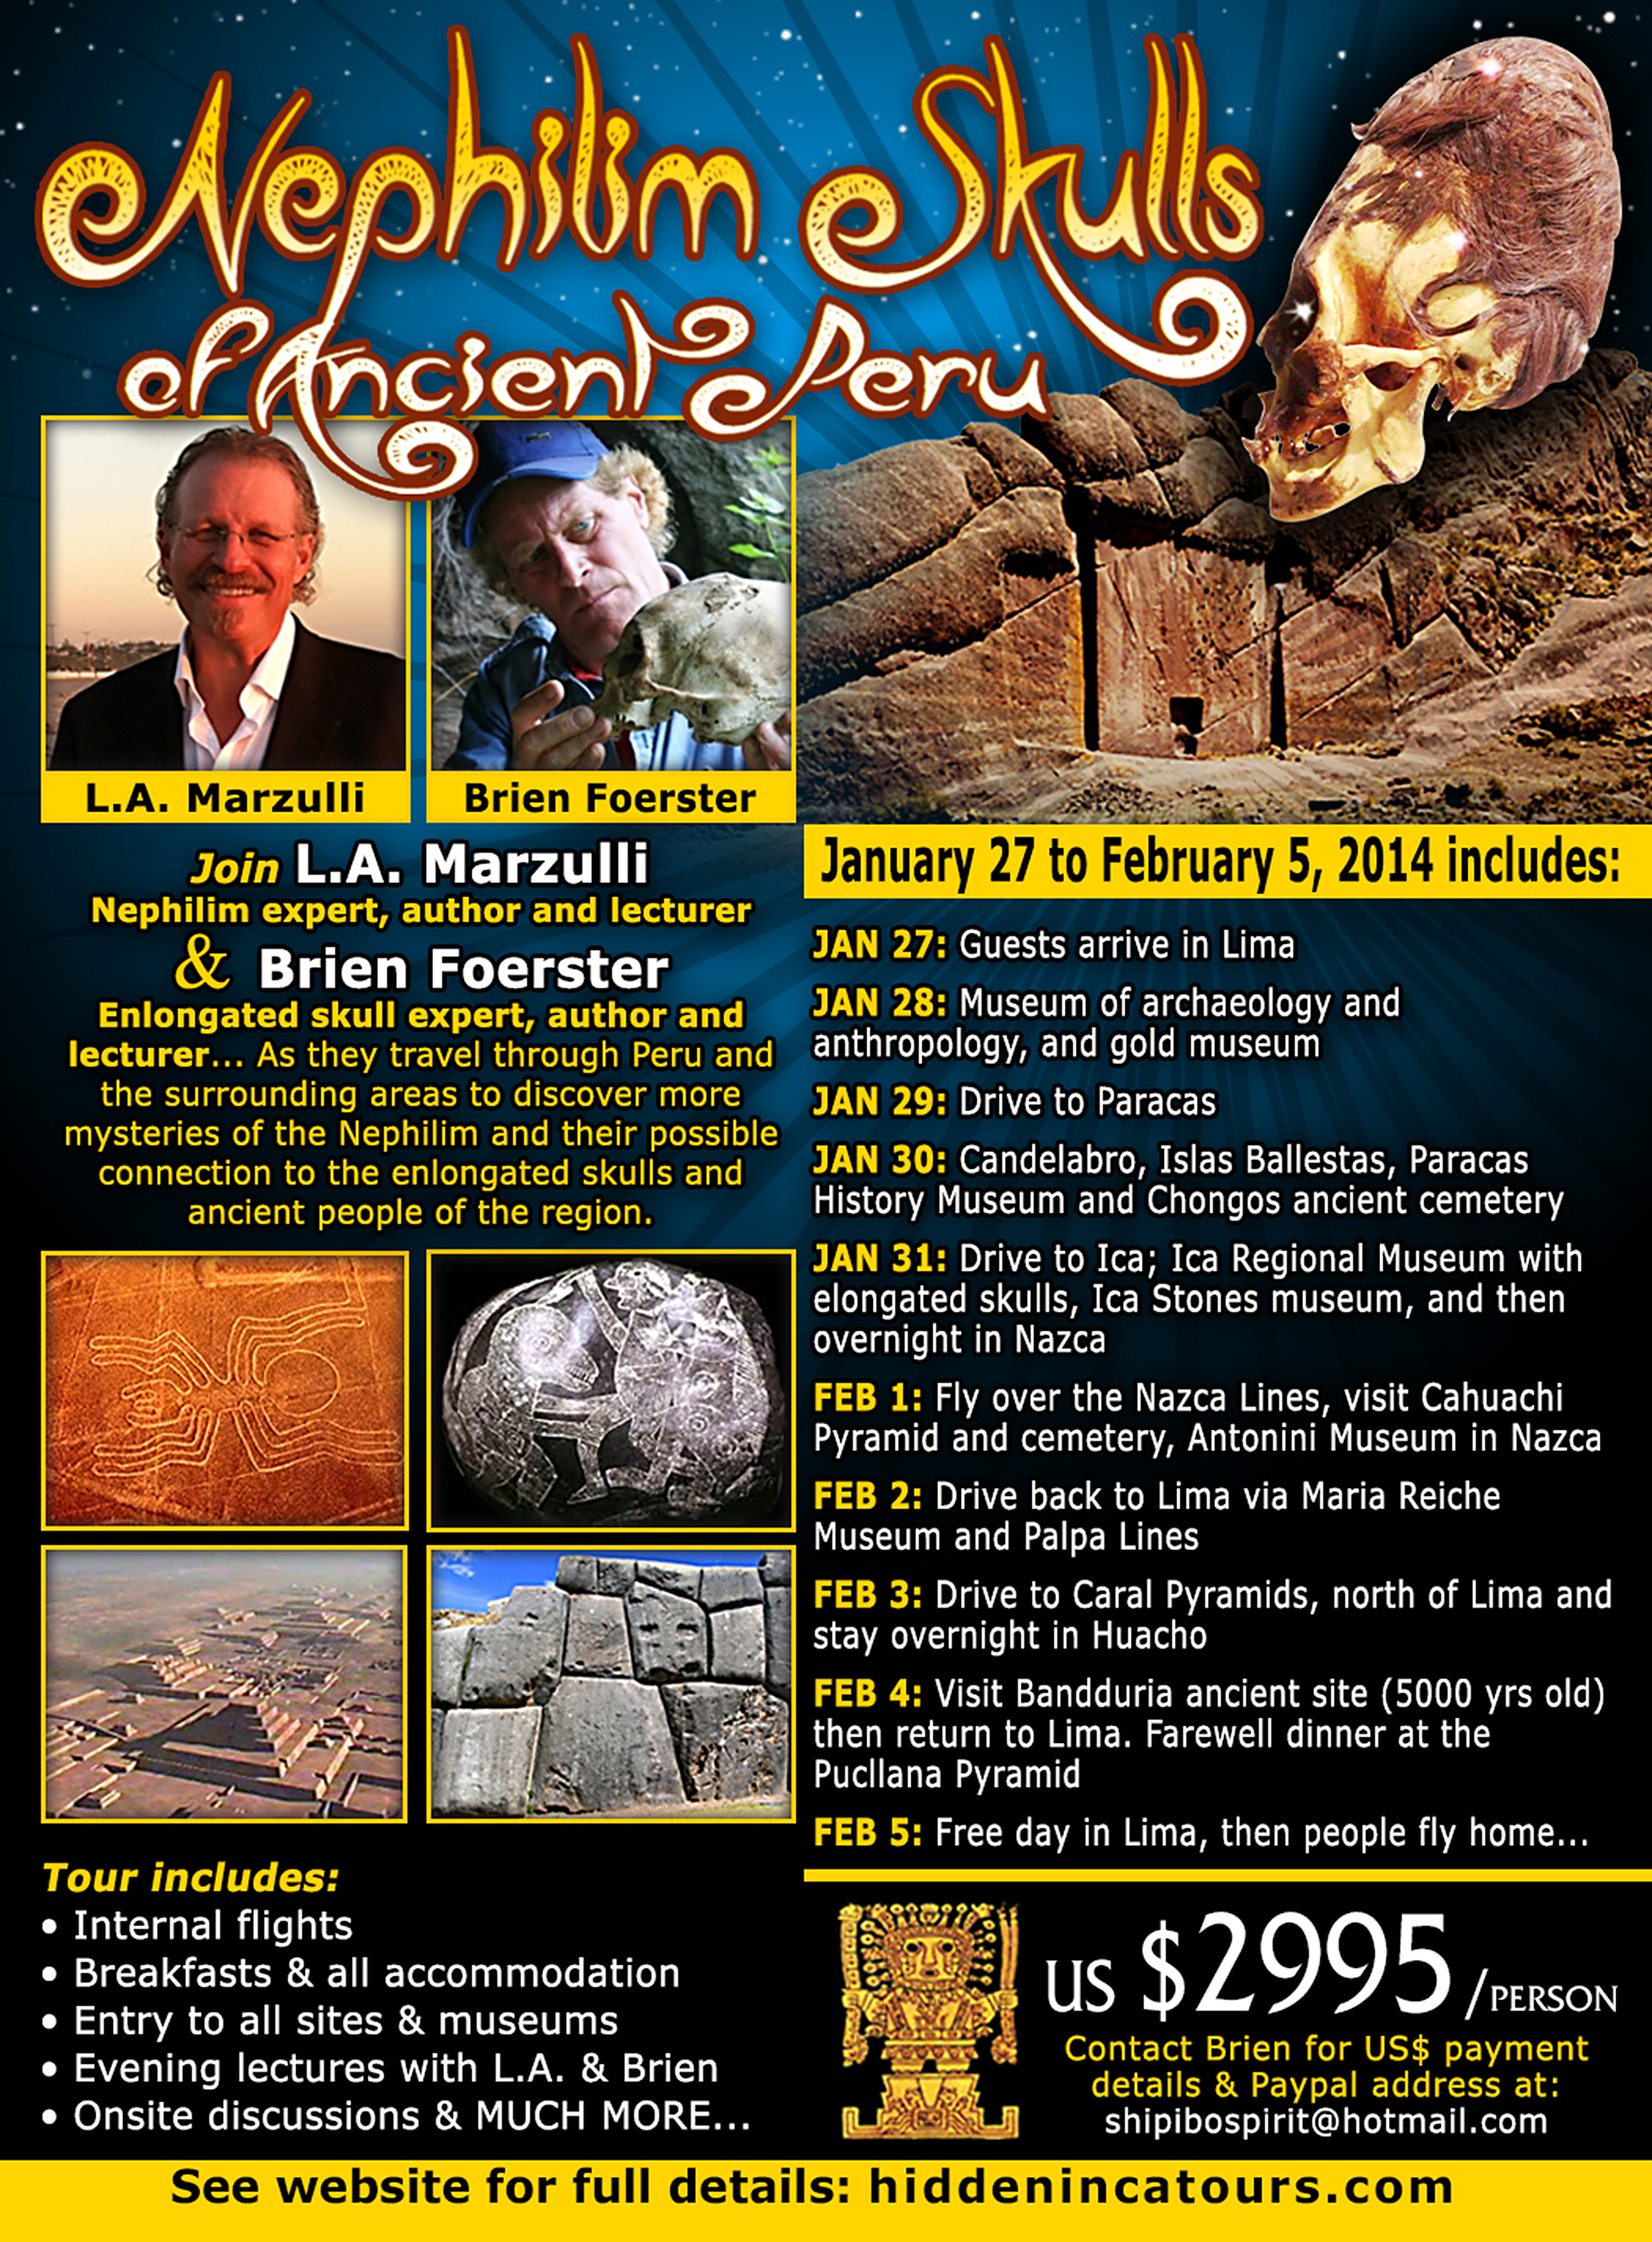 Coast june 28 l a marzulli it s not business as usual - Nephilim Skulls Tour In Enigmatic Peru